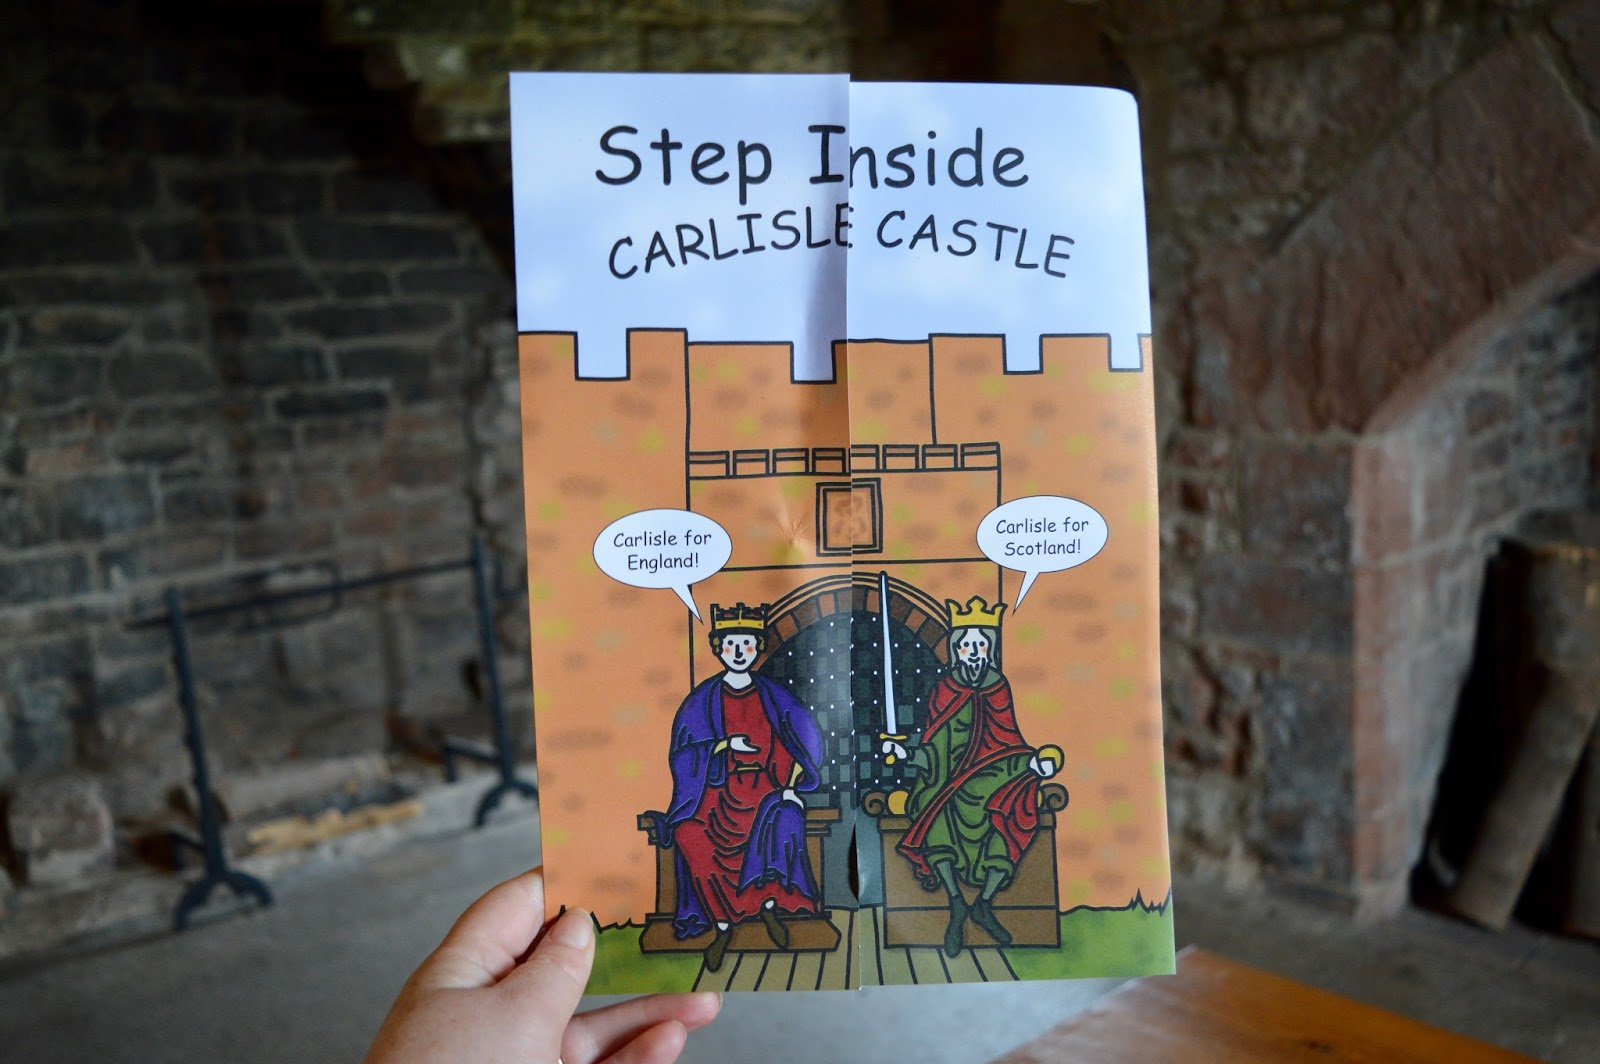 6 Day Trips to take with your Kids this Summer (that are less than 2 hours drive from Newcastle) | Carlisle Casle (Carlisle Day trip)